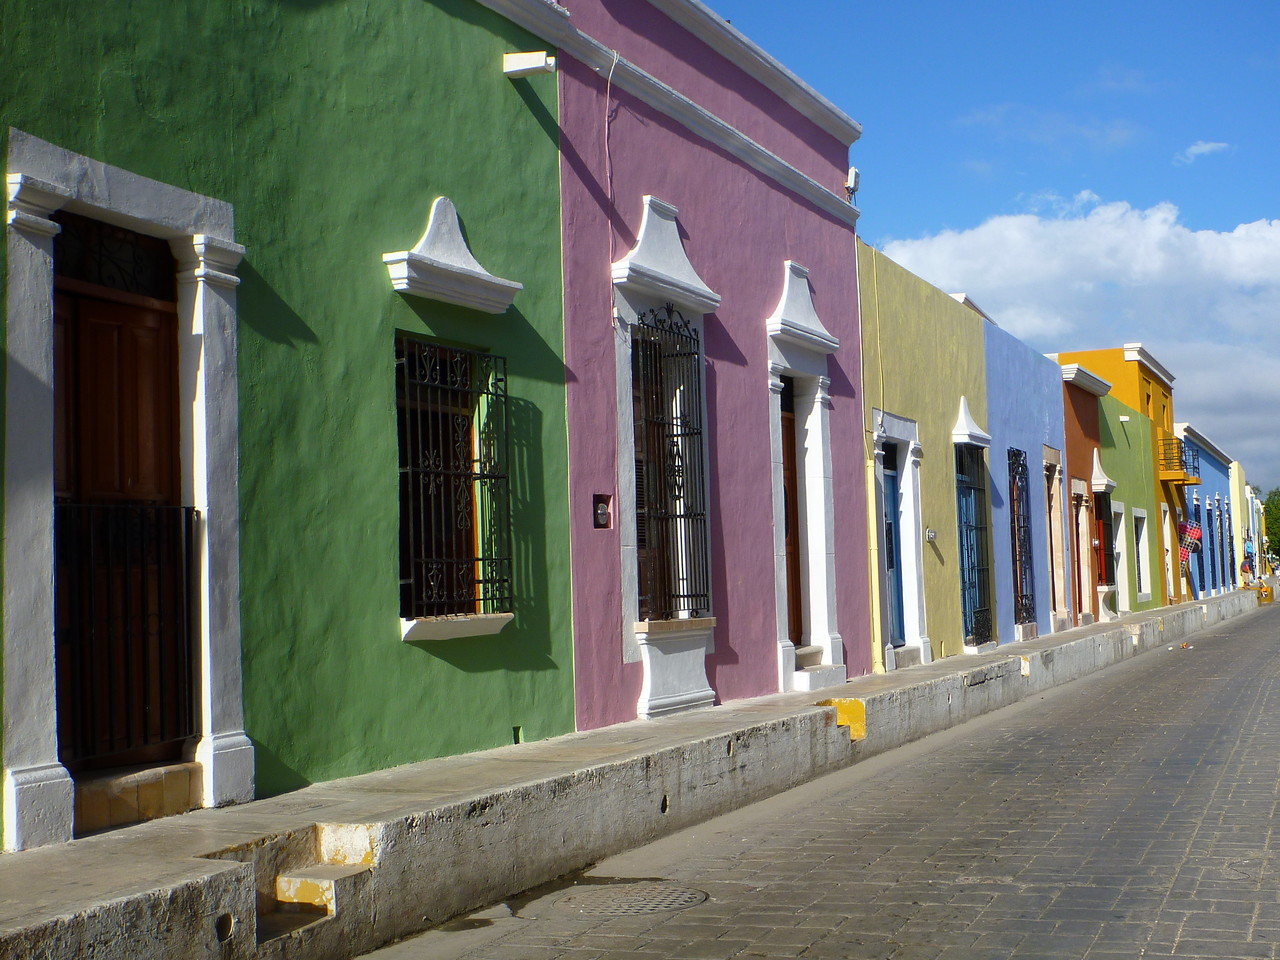 Campeche is a very colorful city.